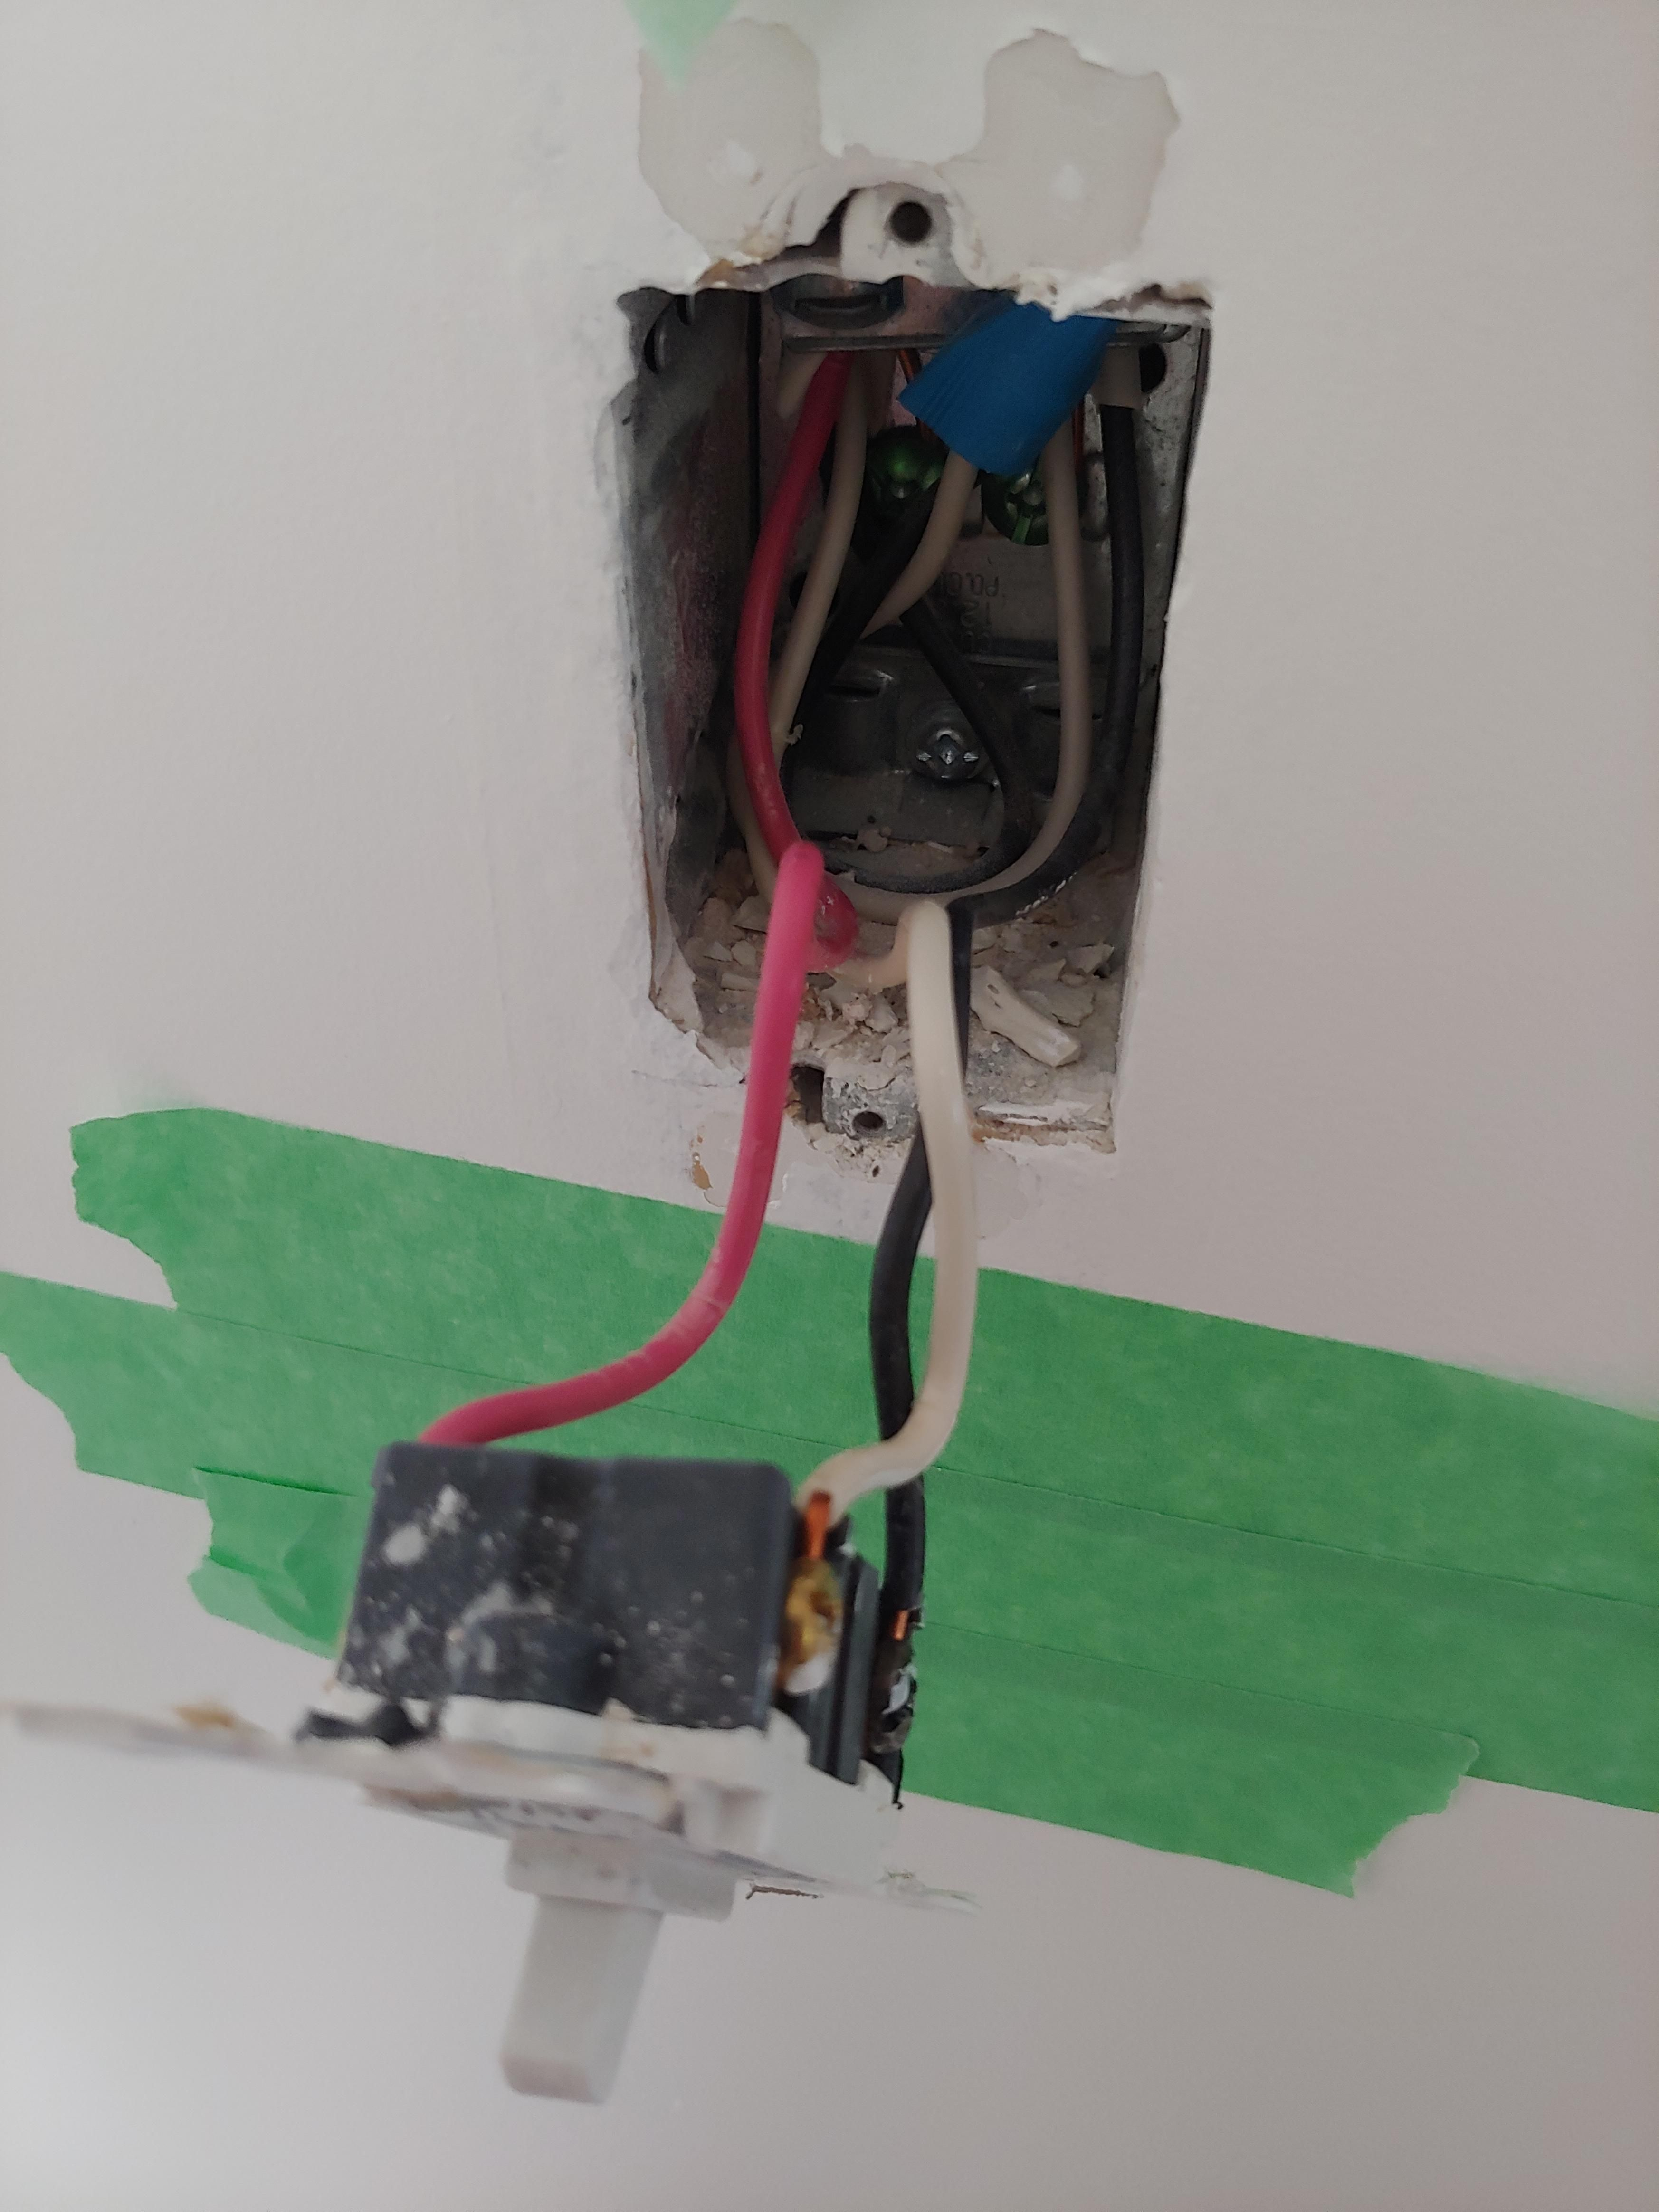 Trying To Install A Dimmer Switch But Wires Don T Match Up Here S What The Original Looked Like The New Dimmer Has 2 Reds Dimmer Switch Dimmer Installation